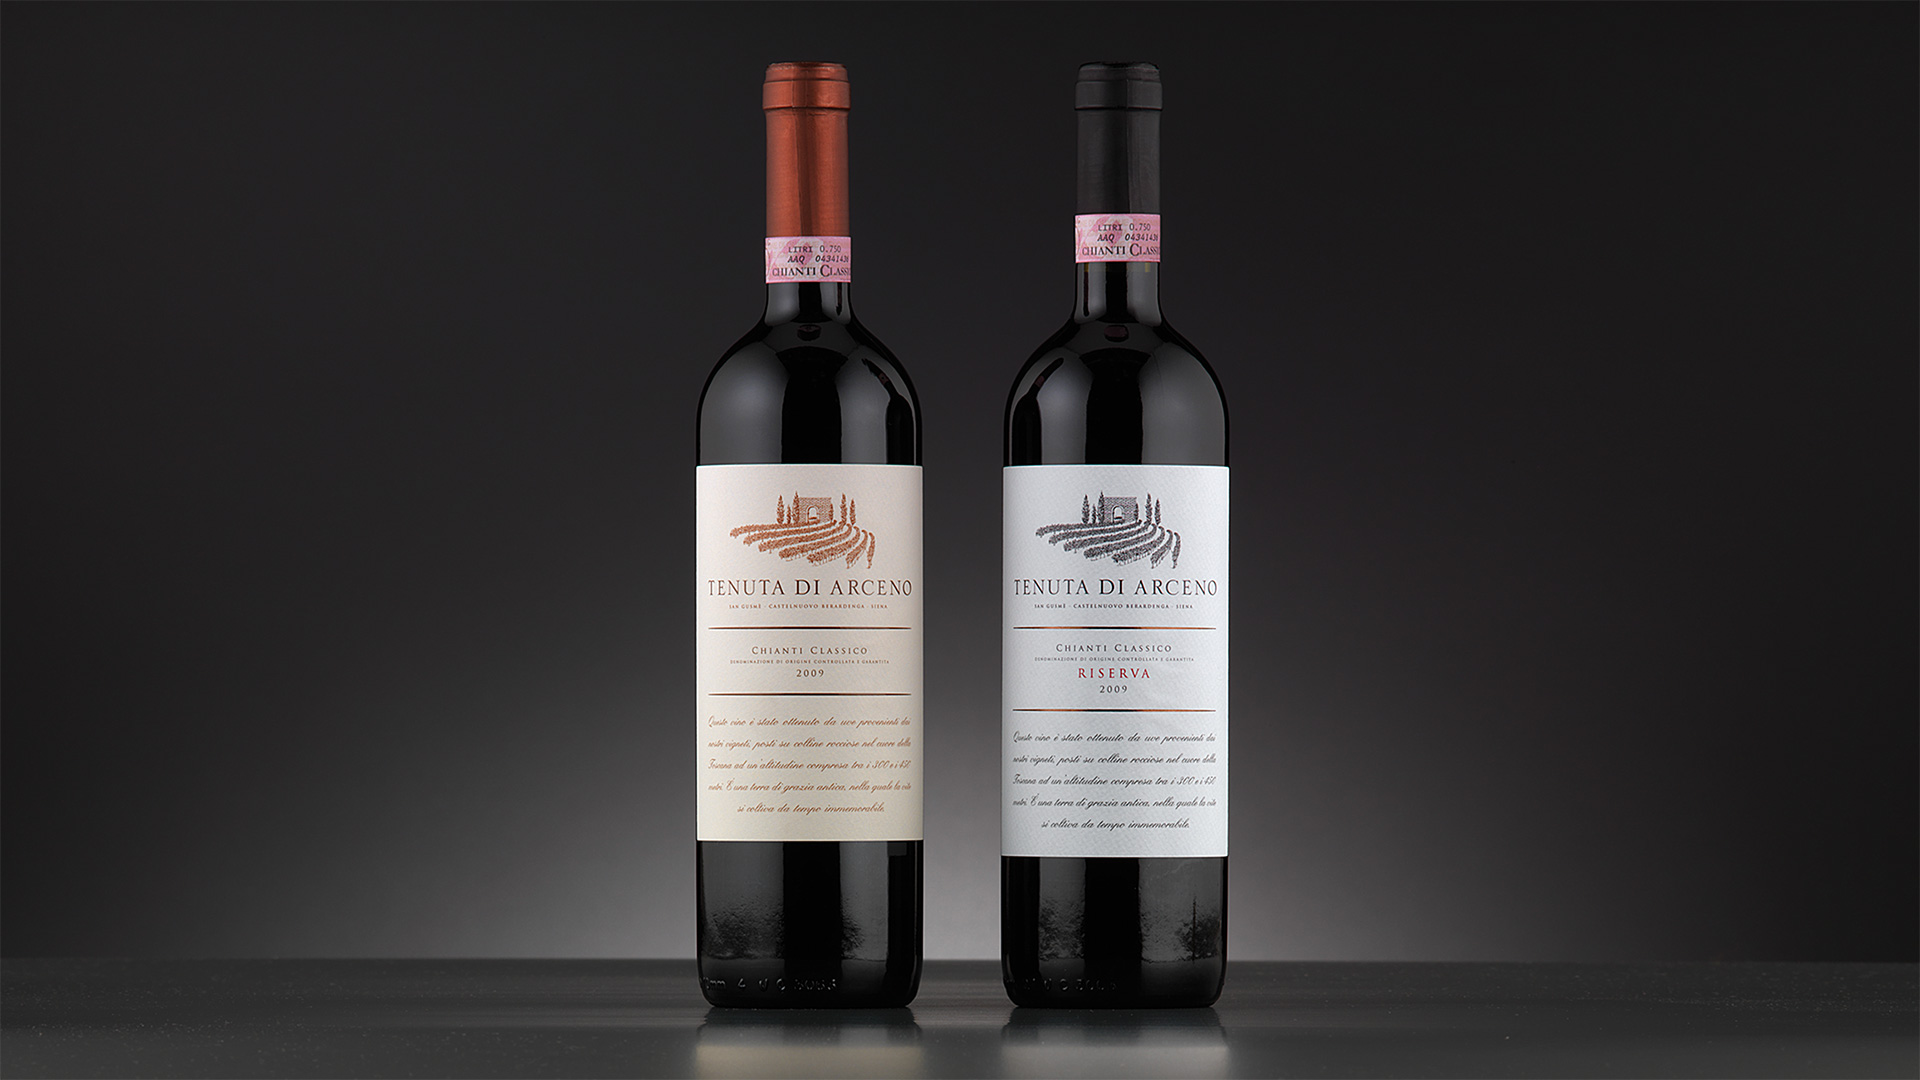 tenuta di Arceno packaging